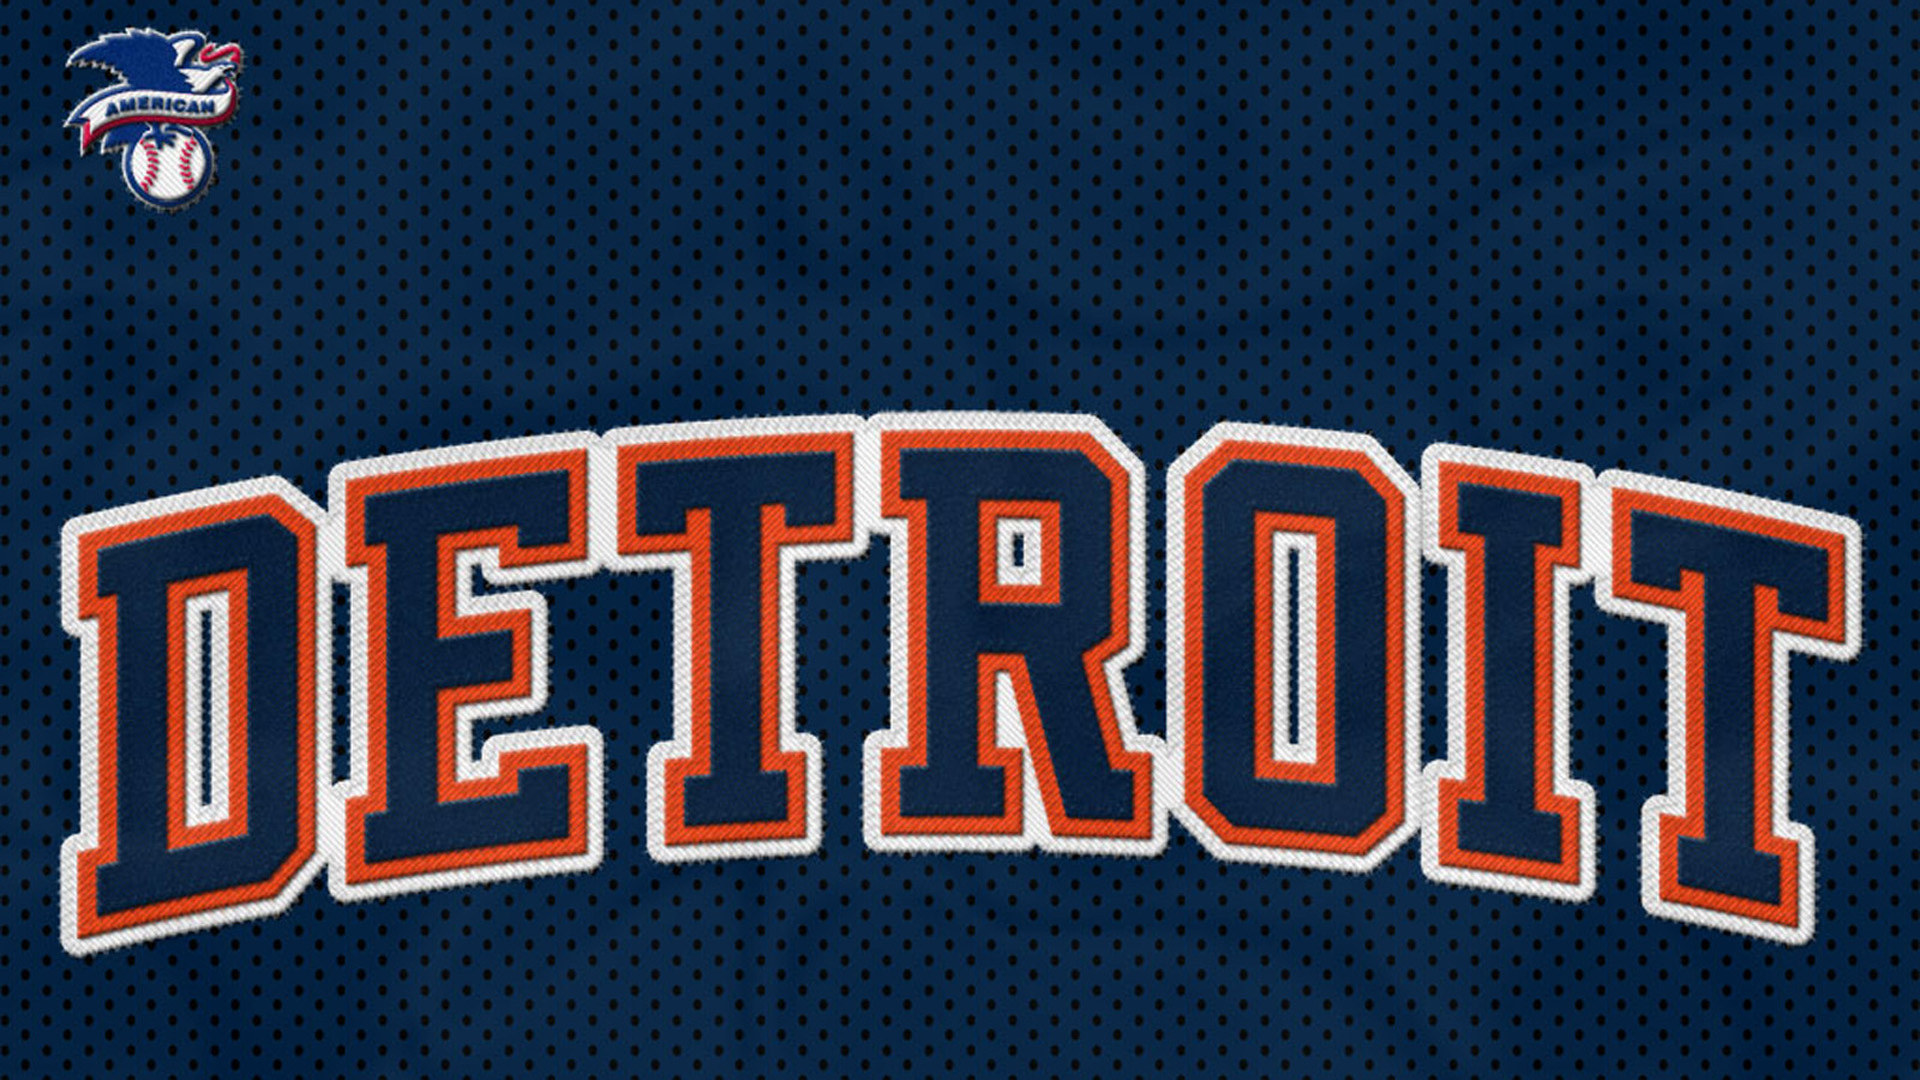 1920x1080 - Detroit Tigers Wallpapers 24